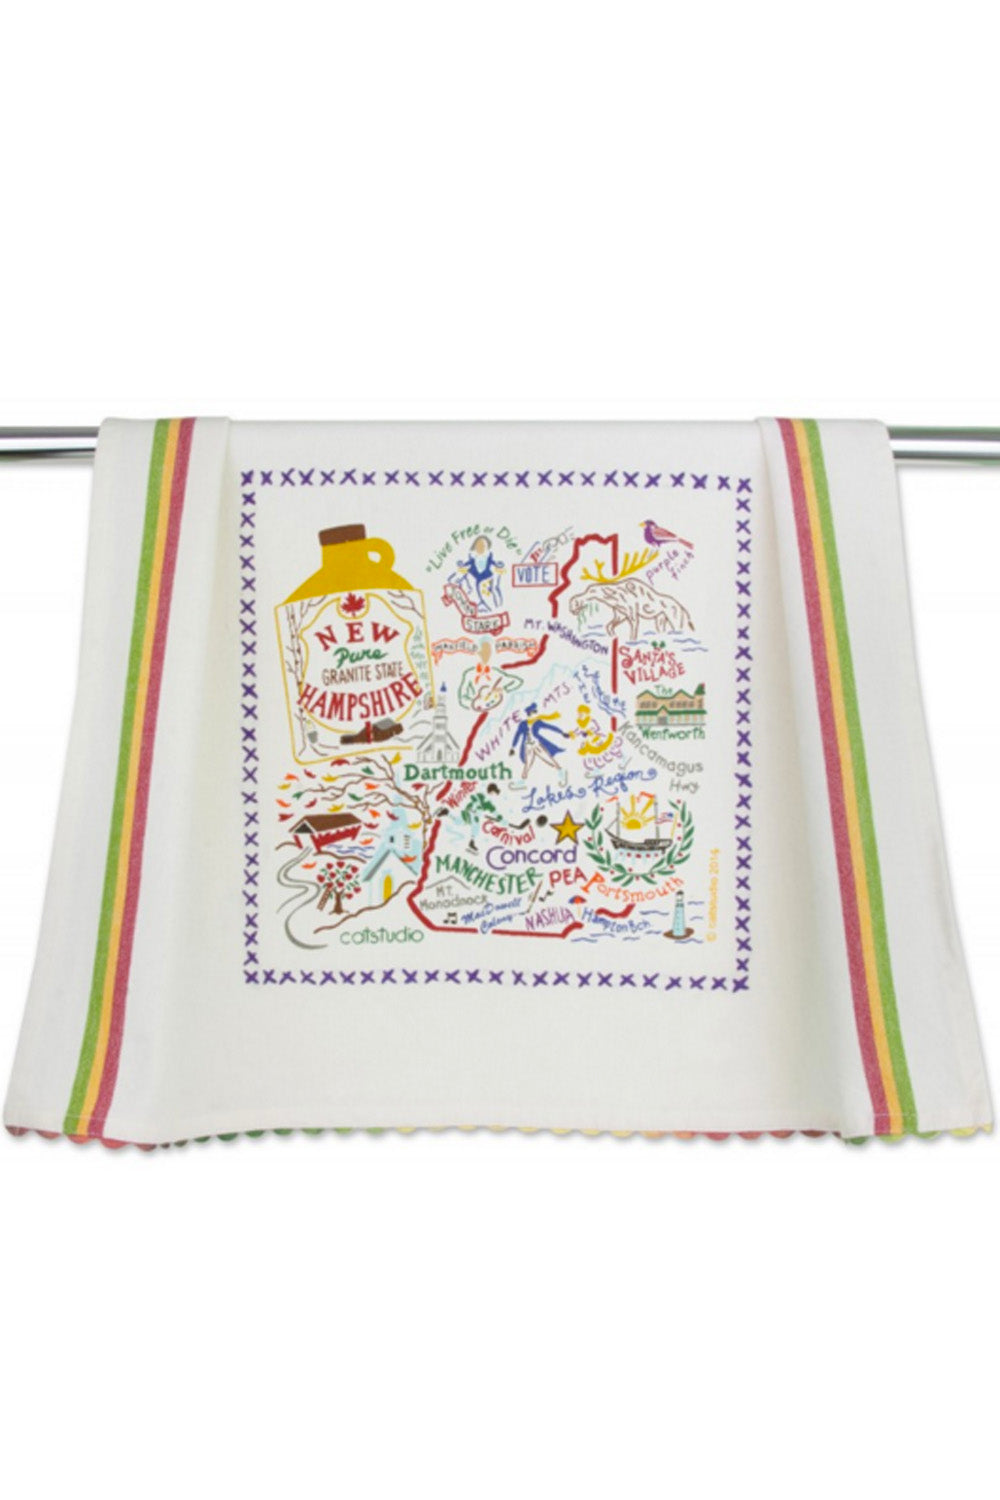 Embroidered Dish Towel - New Hampshire